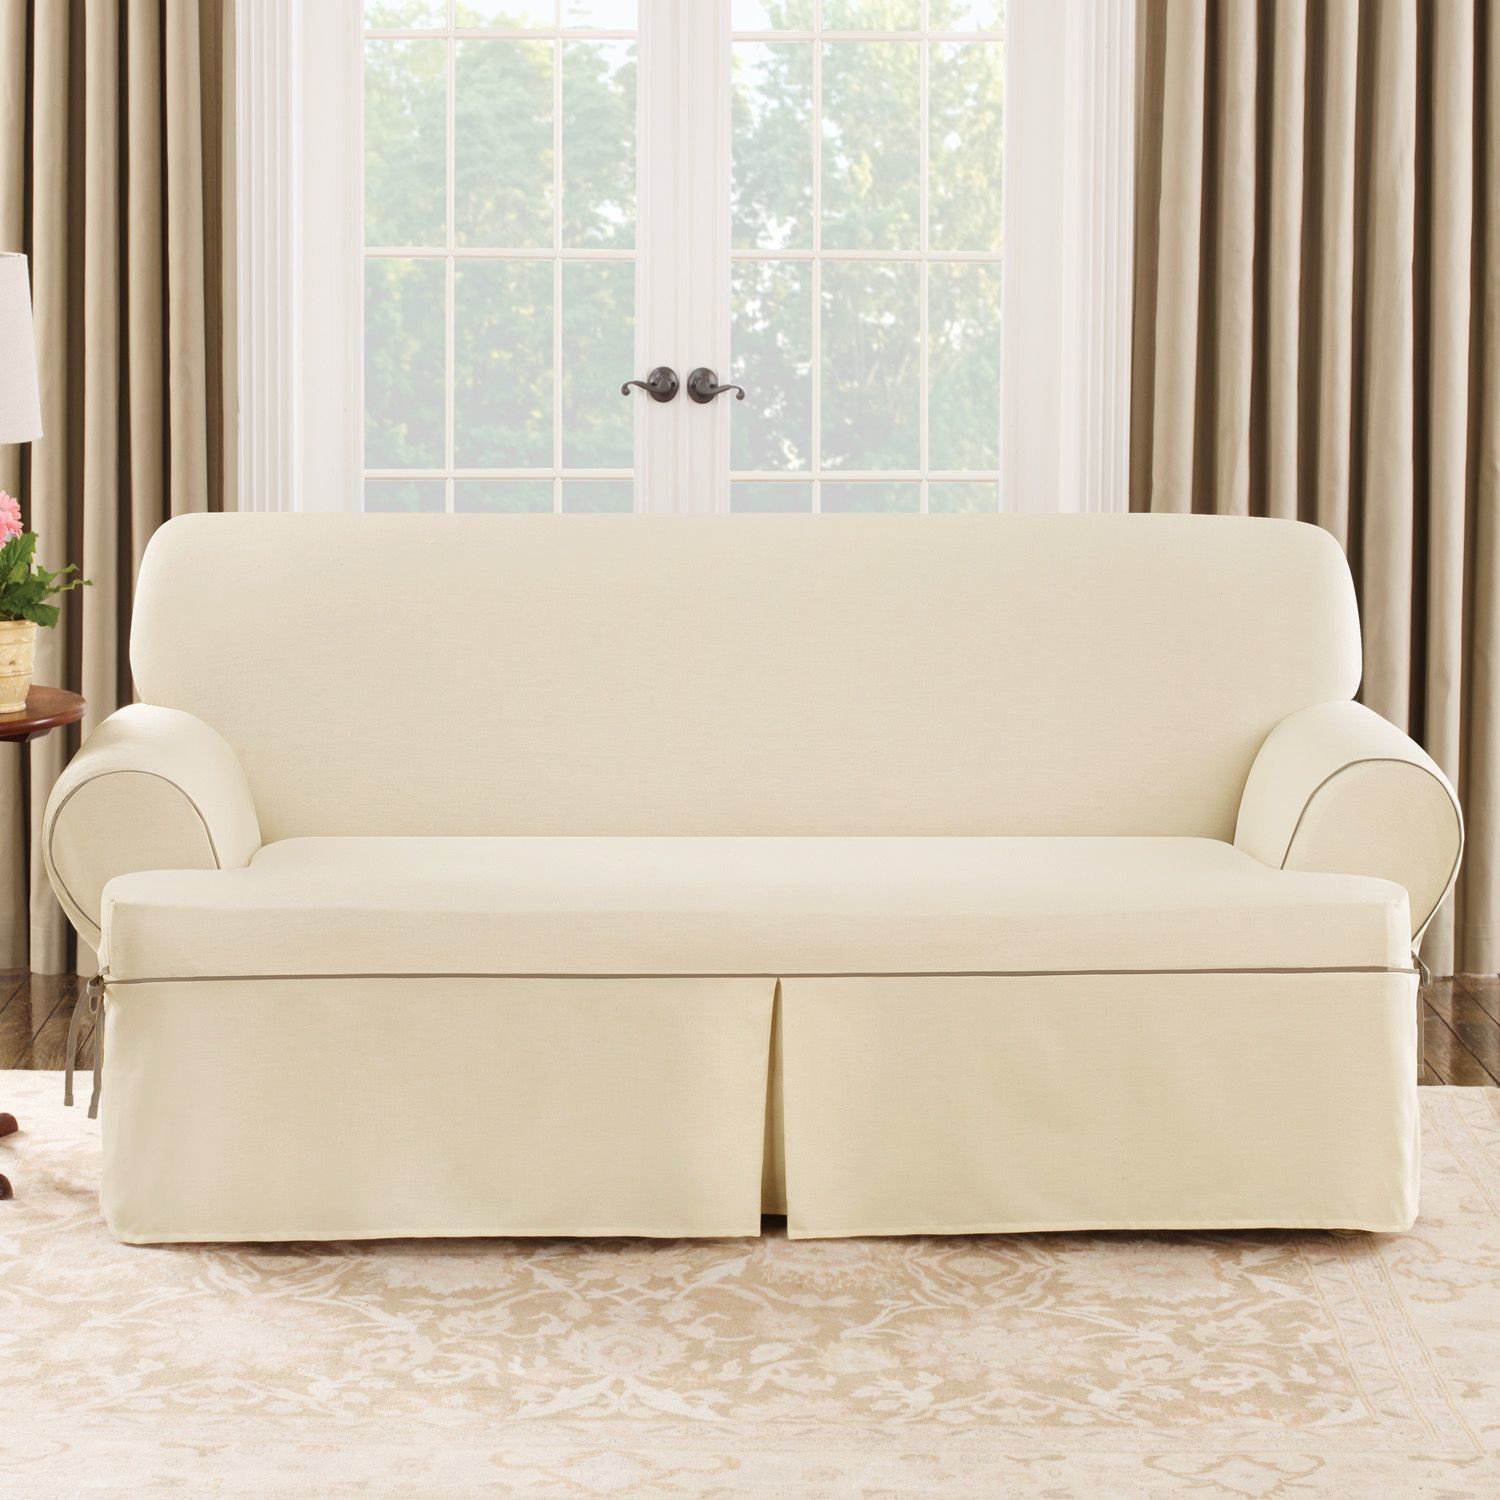 Linen Couch Slipcovers | Recliner Covers | Couch Slipcovers